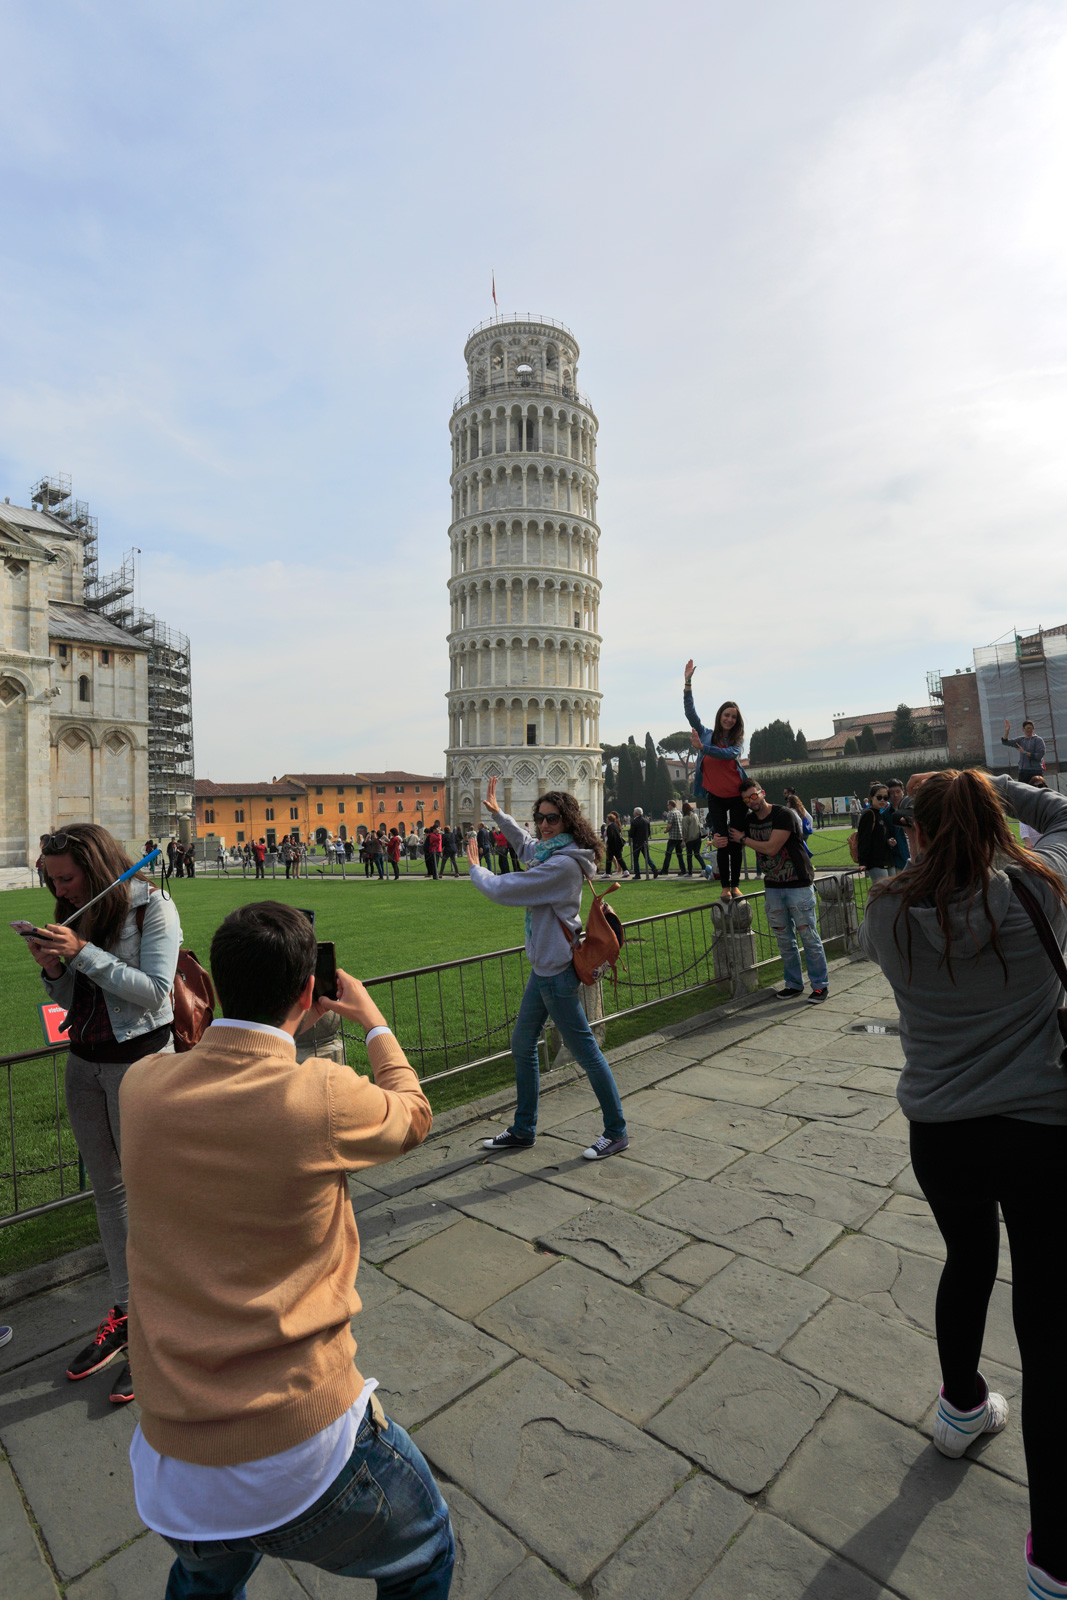 Summer, Cathedral and Leaning Tower of Pisa, with tourists, Square of Miracles, Pisa city, UNESCO World Heritage Site, Tuscany, Italy, Europe.